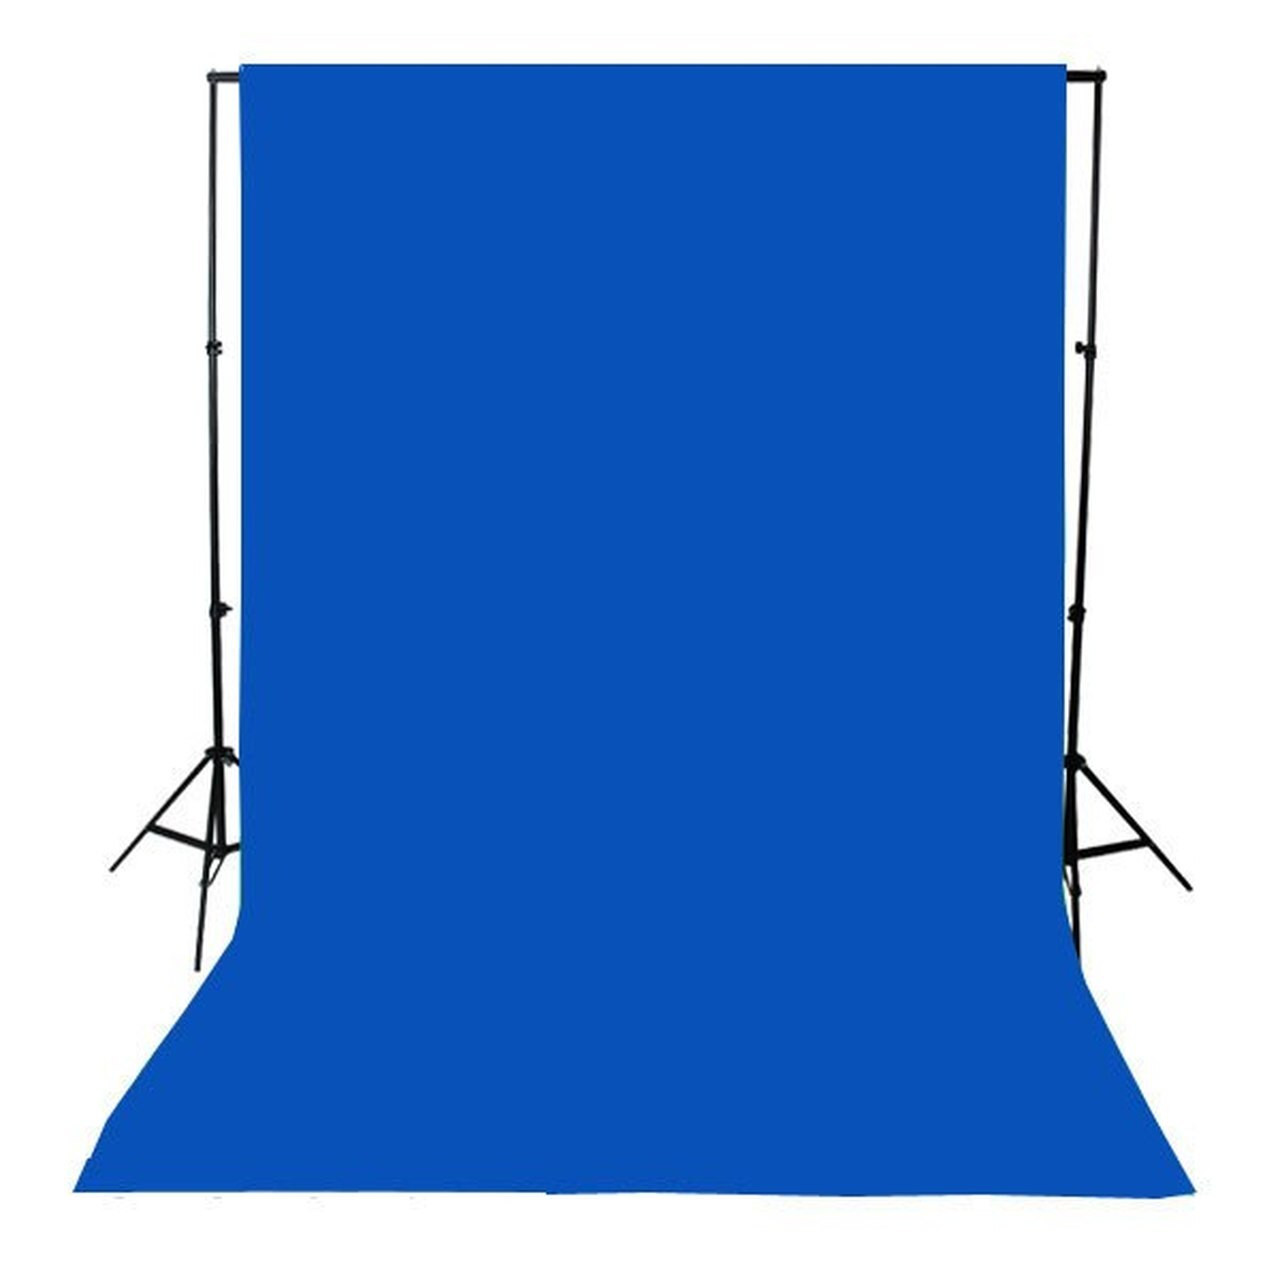 Chroma Key Blue Commando Cloth / Duvetyne Flame Retardant